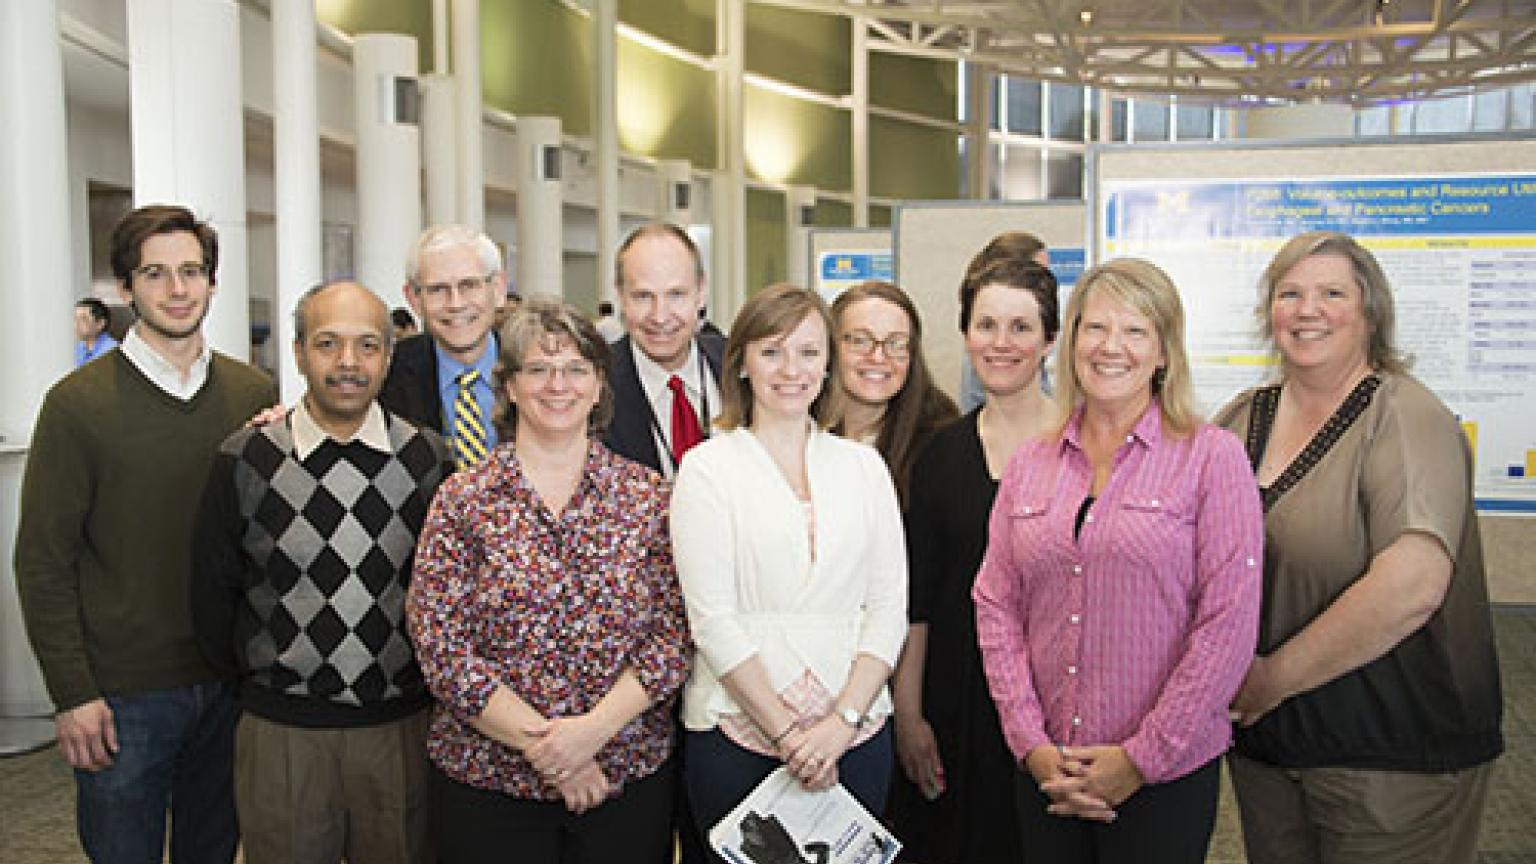 Dr. Wakefield and Dr. Henke and conference participants